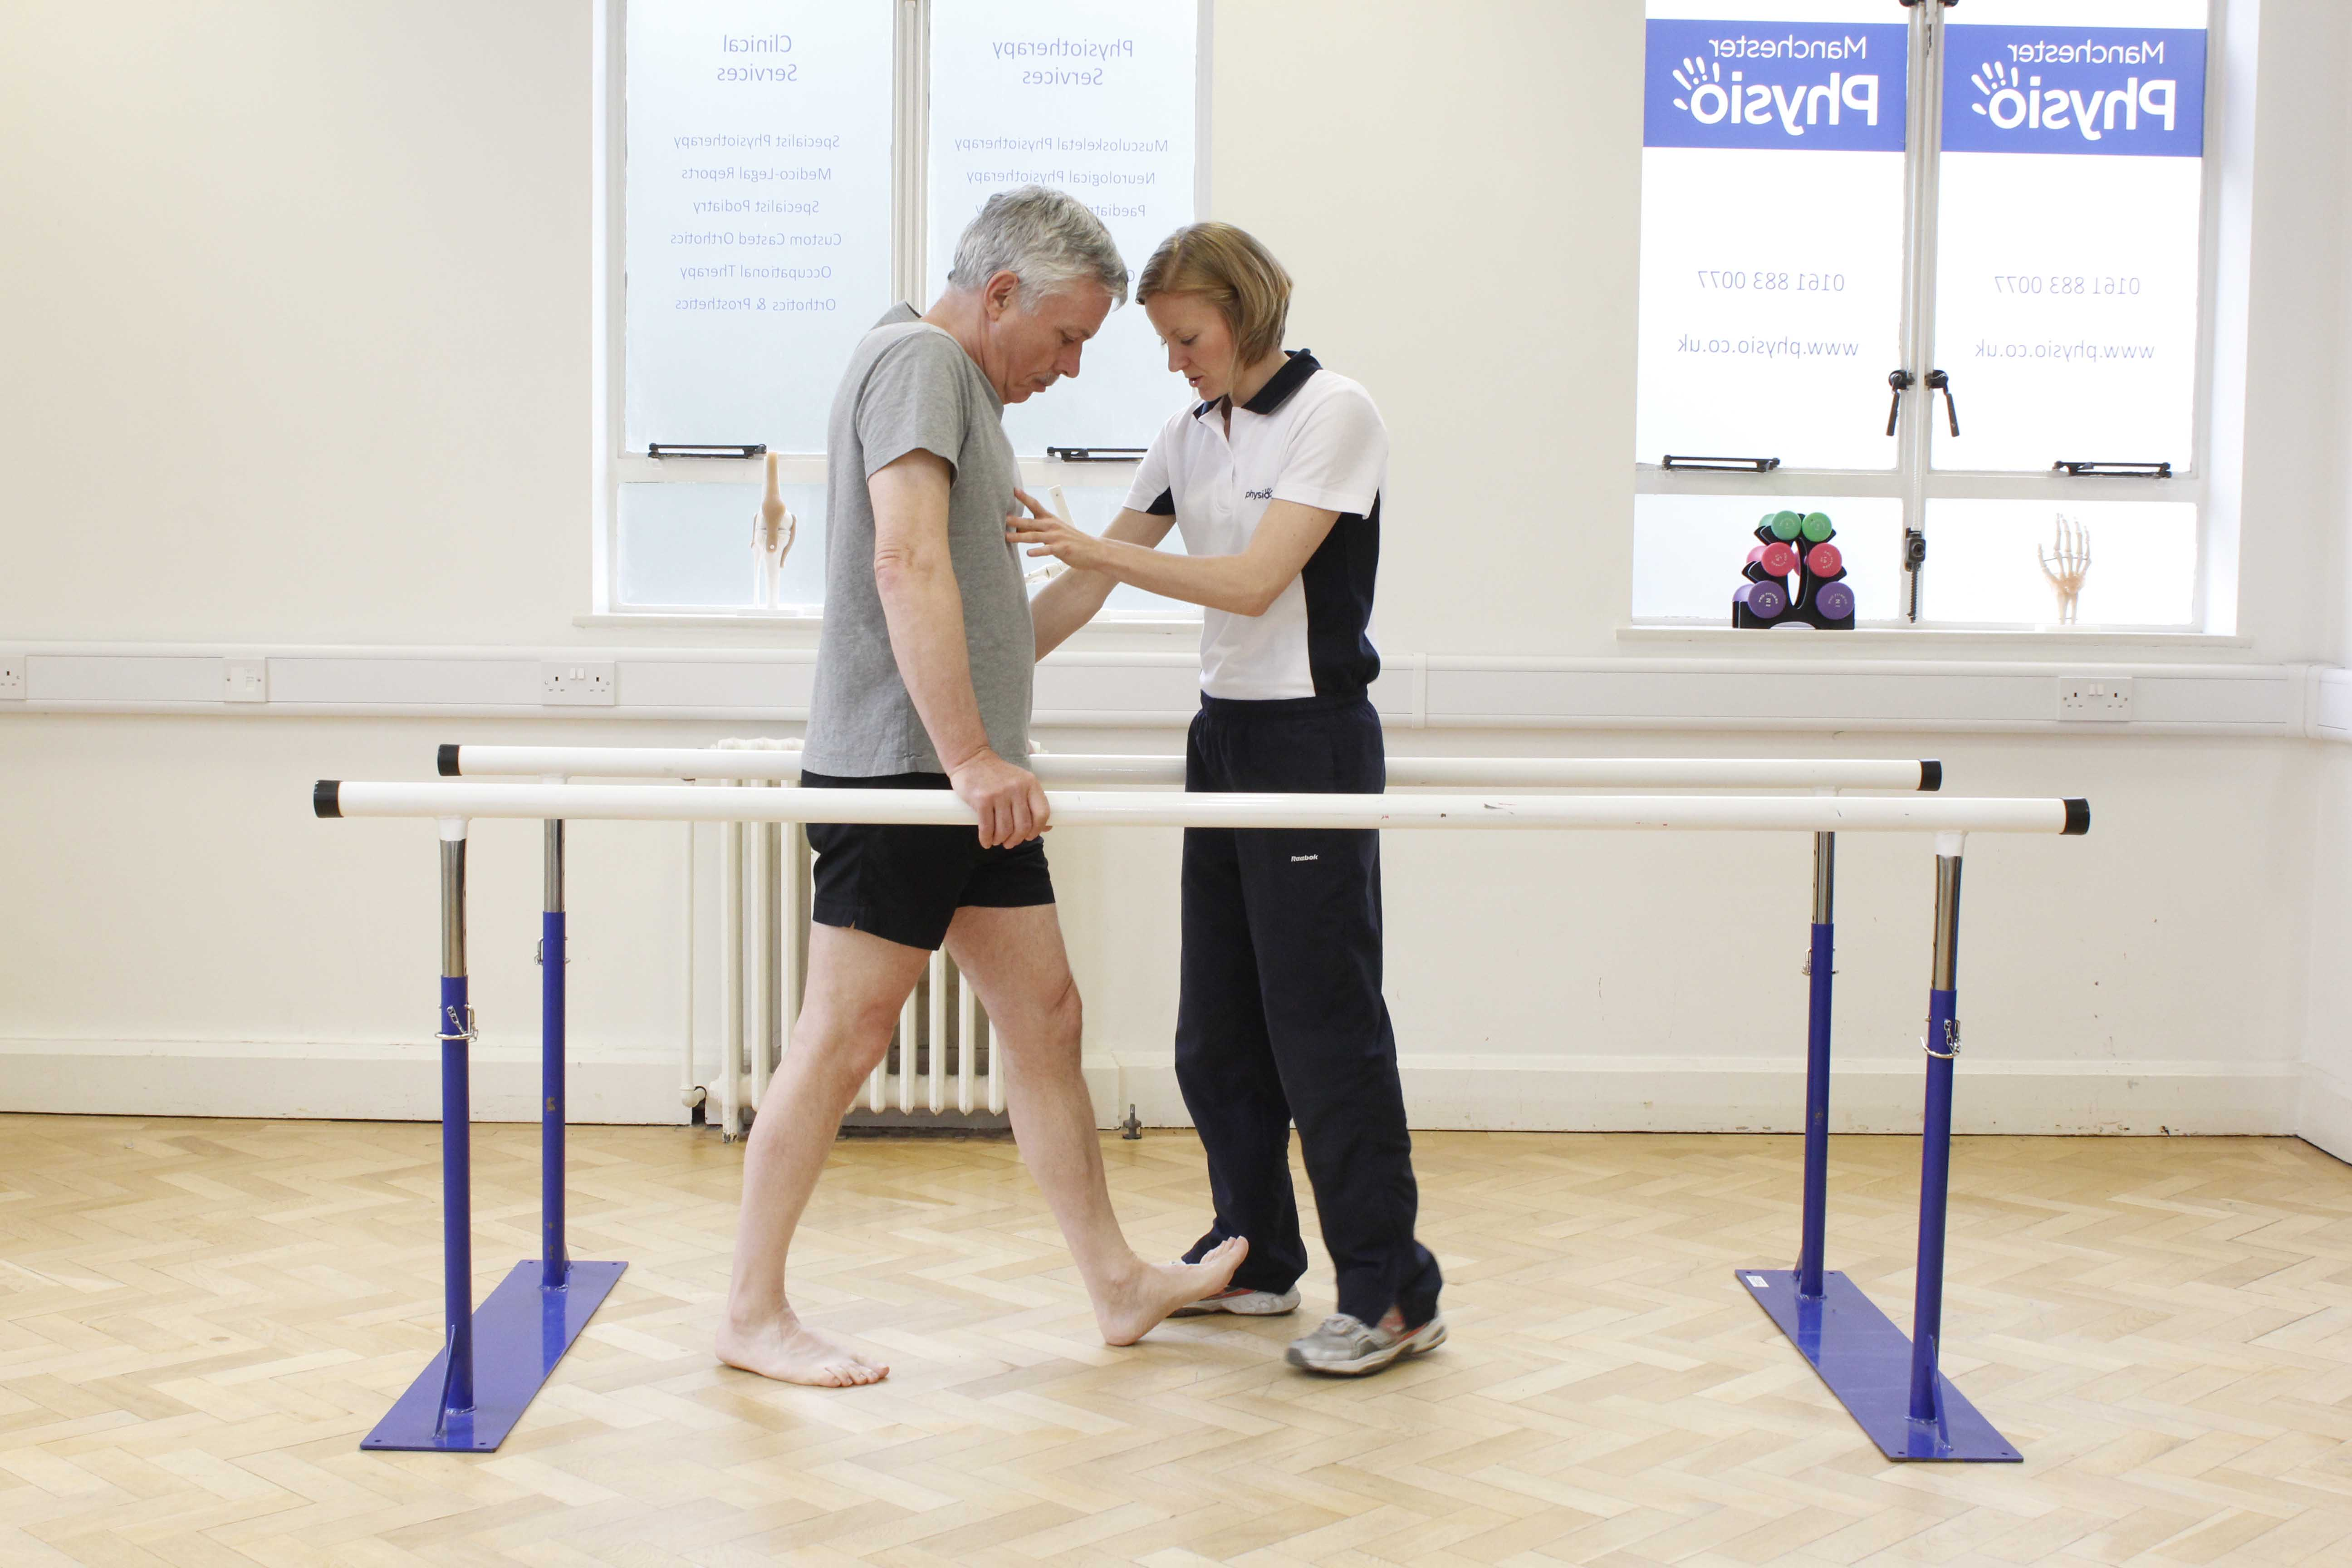 Gait re-education mobility exercises between the parallel bars under supervision of a physiotherapist